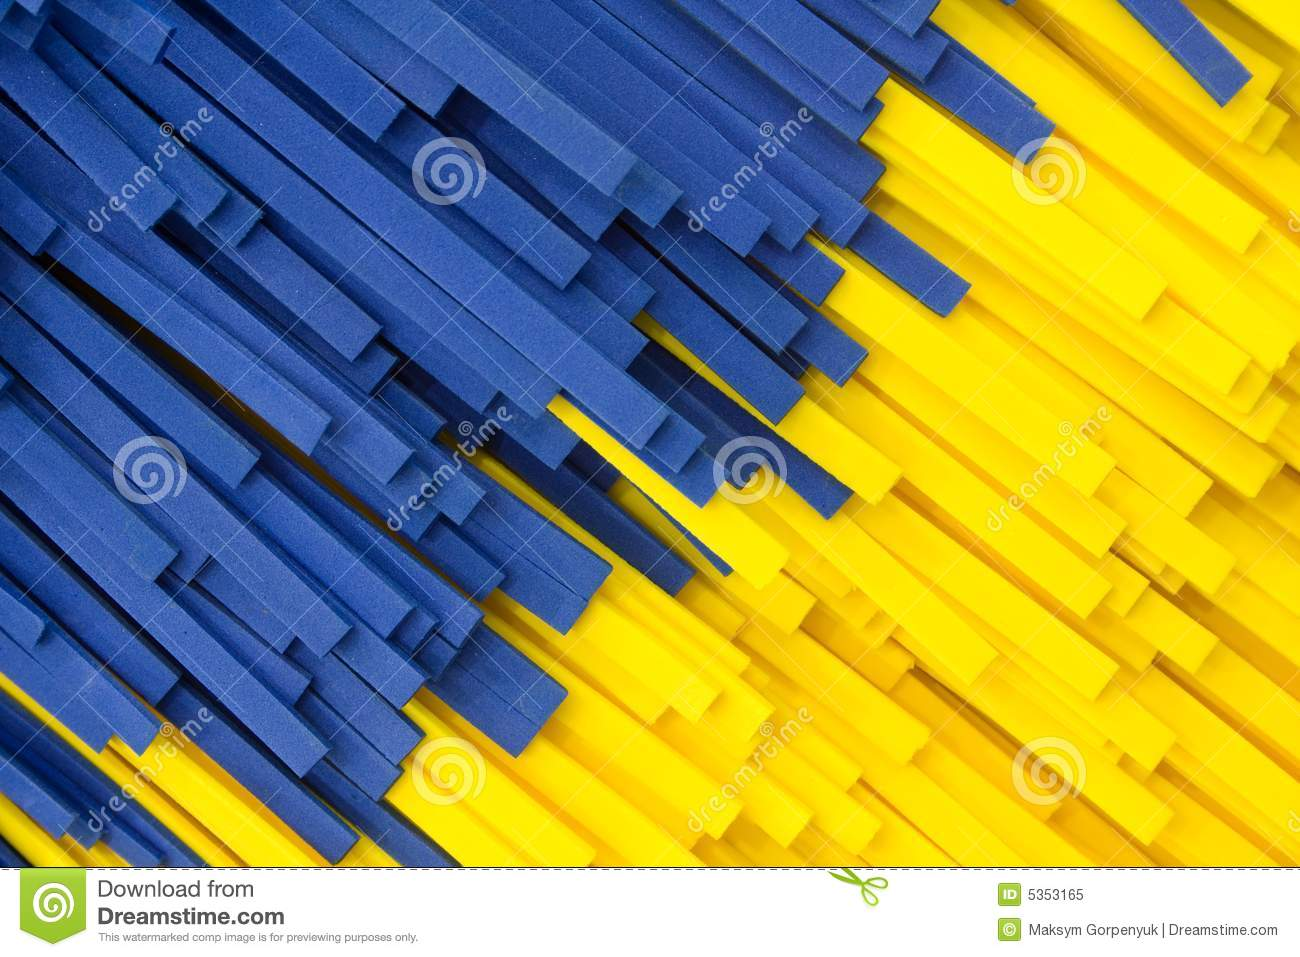 Car Wash Brush >> Abstract Yellow And Blue Strip Facture Royalty Free Stock Photo - Image: 5353165